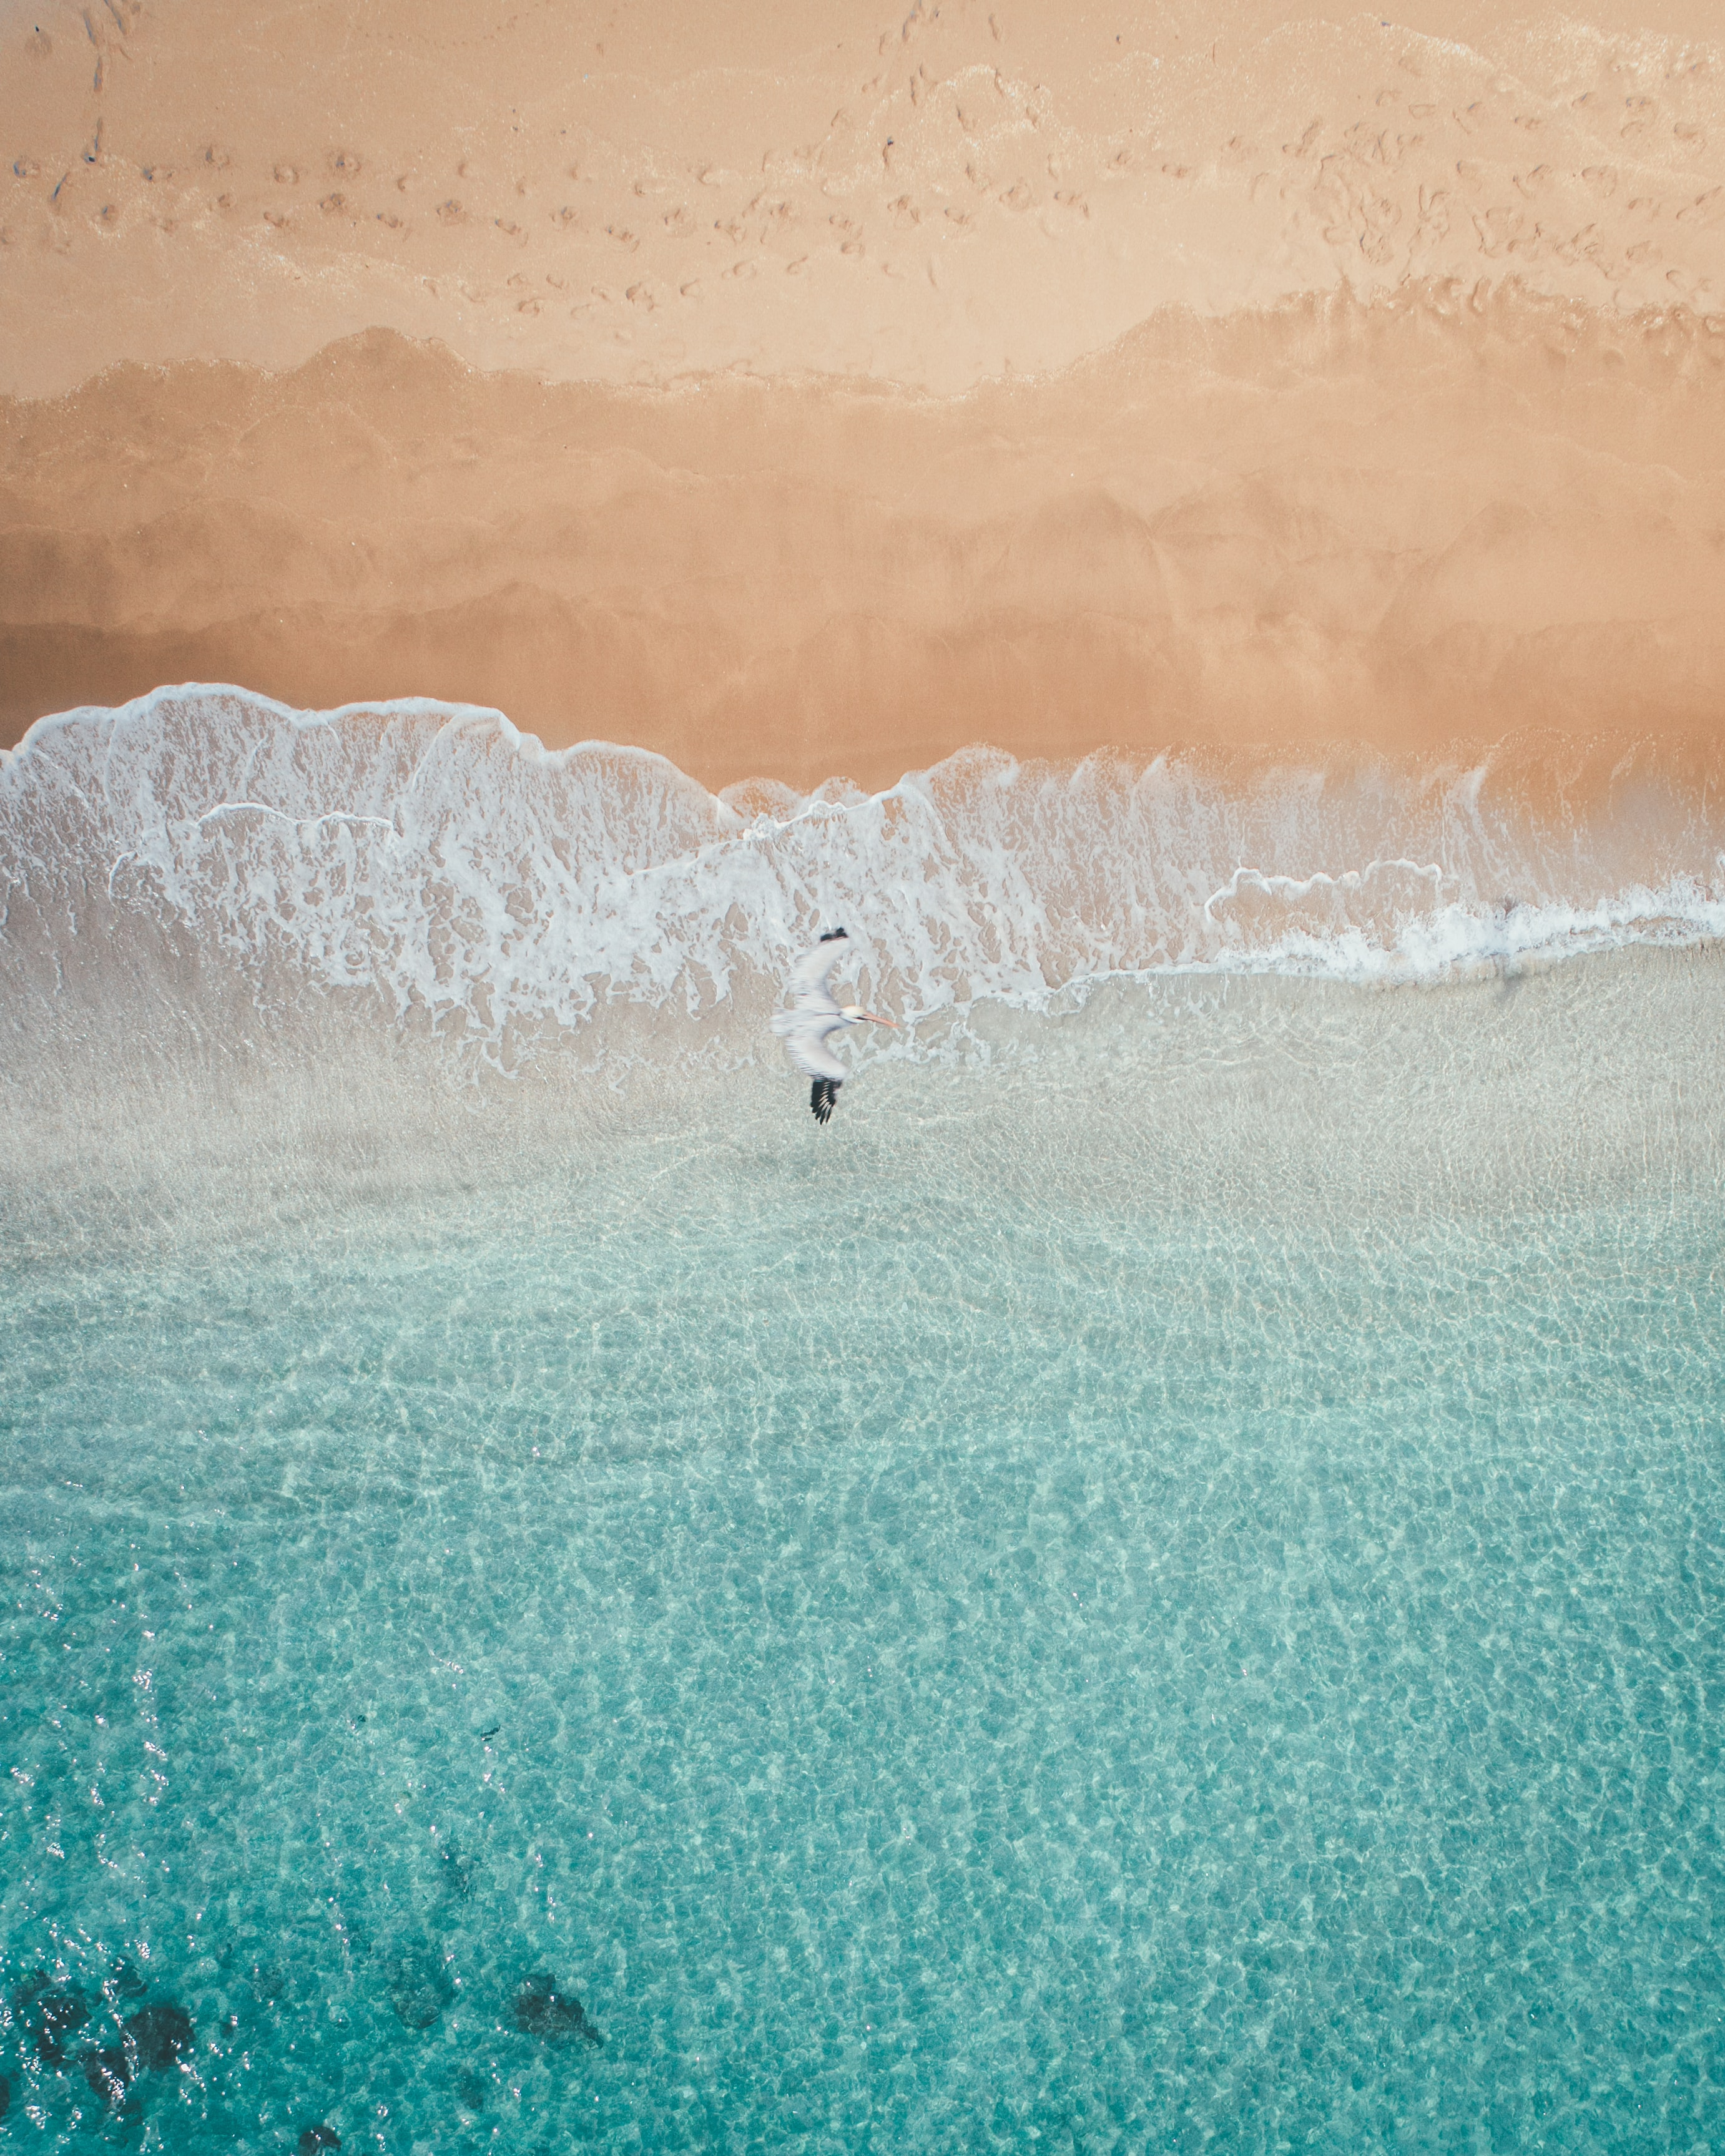 153777 download wallpaper Animals, Bird, Sea, Beach, View From Above screensavers and pictures for free